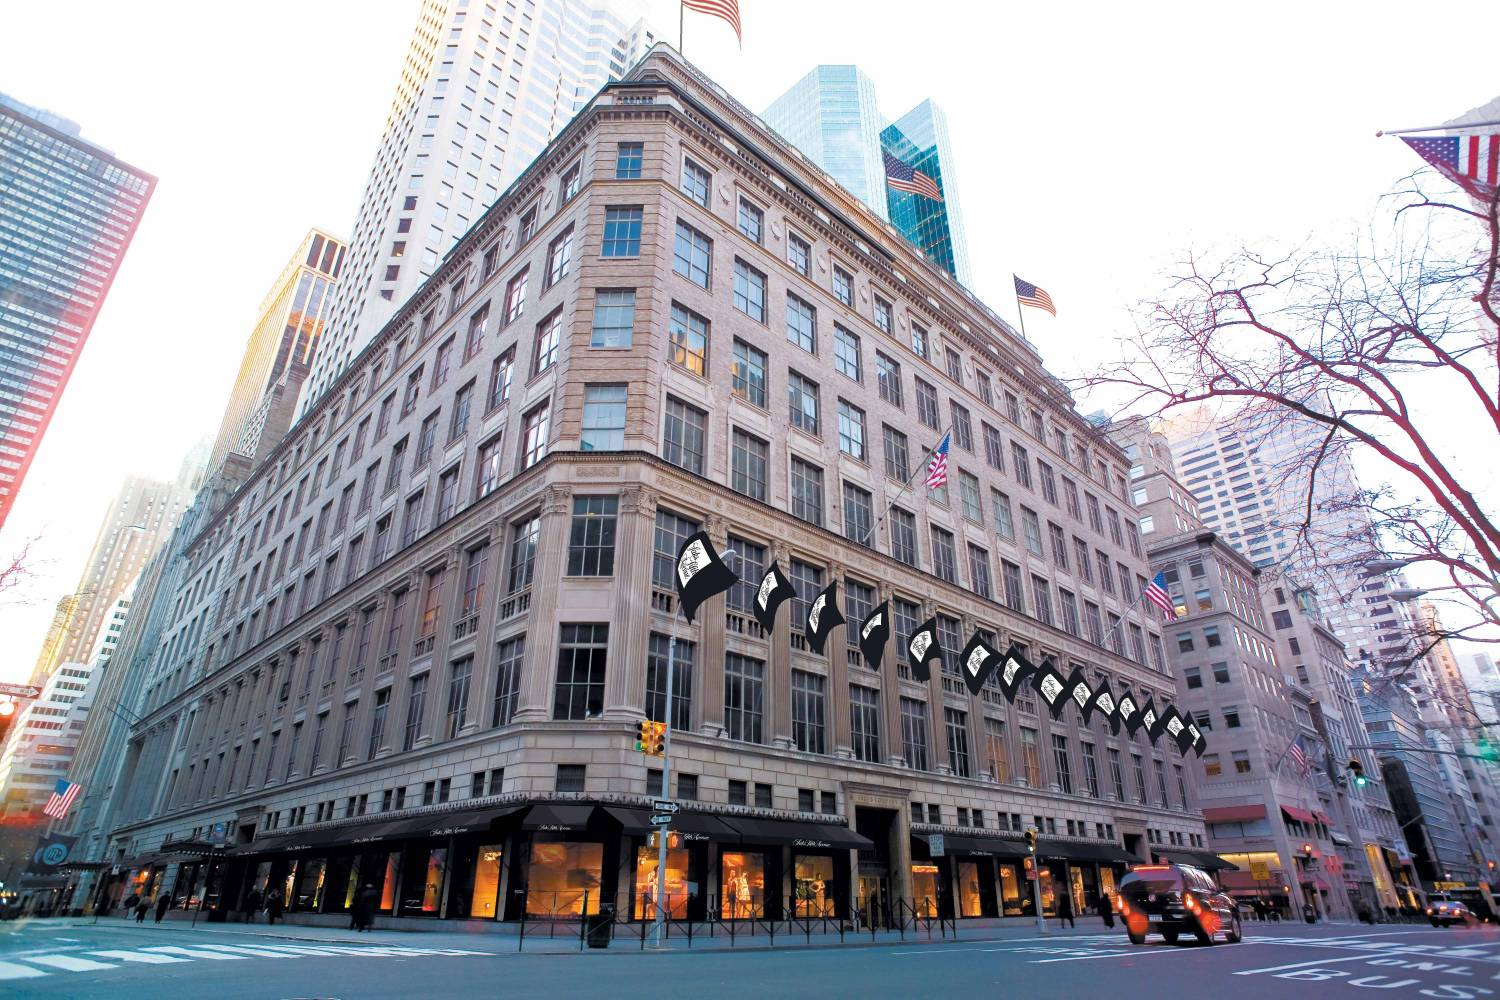 Saks Fifth Avenue New York: 611 Fifth Ave., NYC Shopping Guide on dillard's map, hudson's map, flatiron building map, macy's map, kmart map, nordstrom map, lowe's map, petco map, rockefeller center map, kroger map, new york city map,